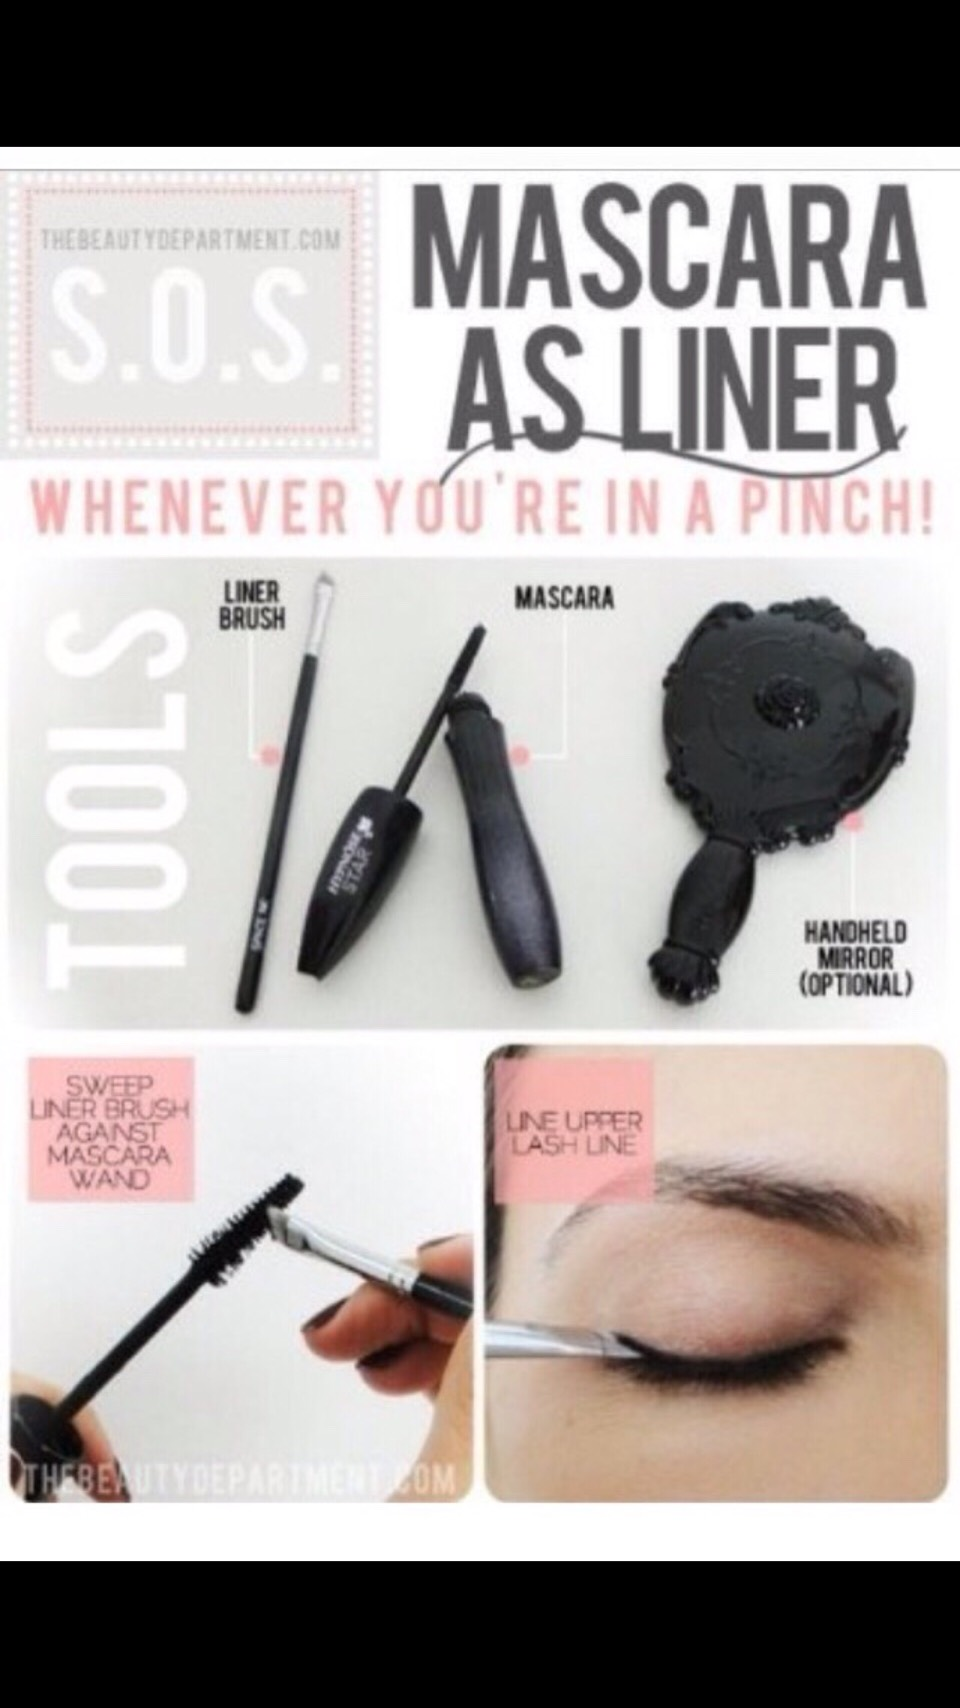 Did you're eyeliner run out or is it too hard or even if you don't have one. Just use your mascara and a liner brush to substitute😱💯